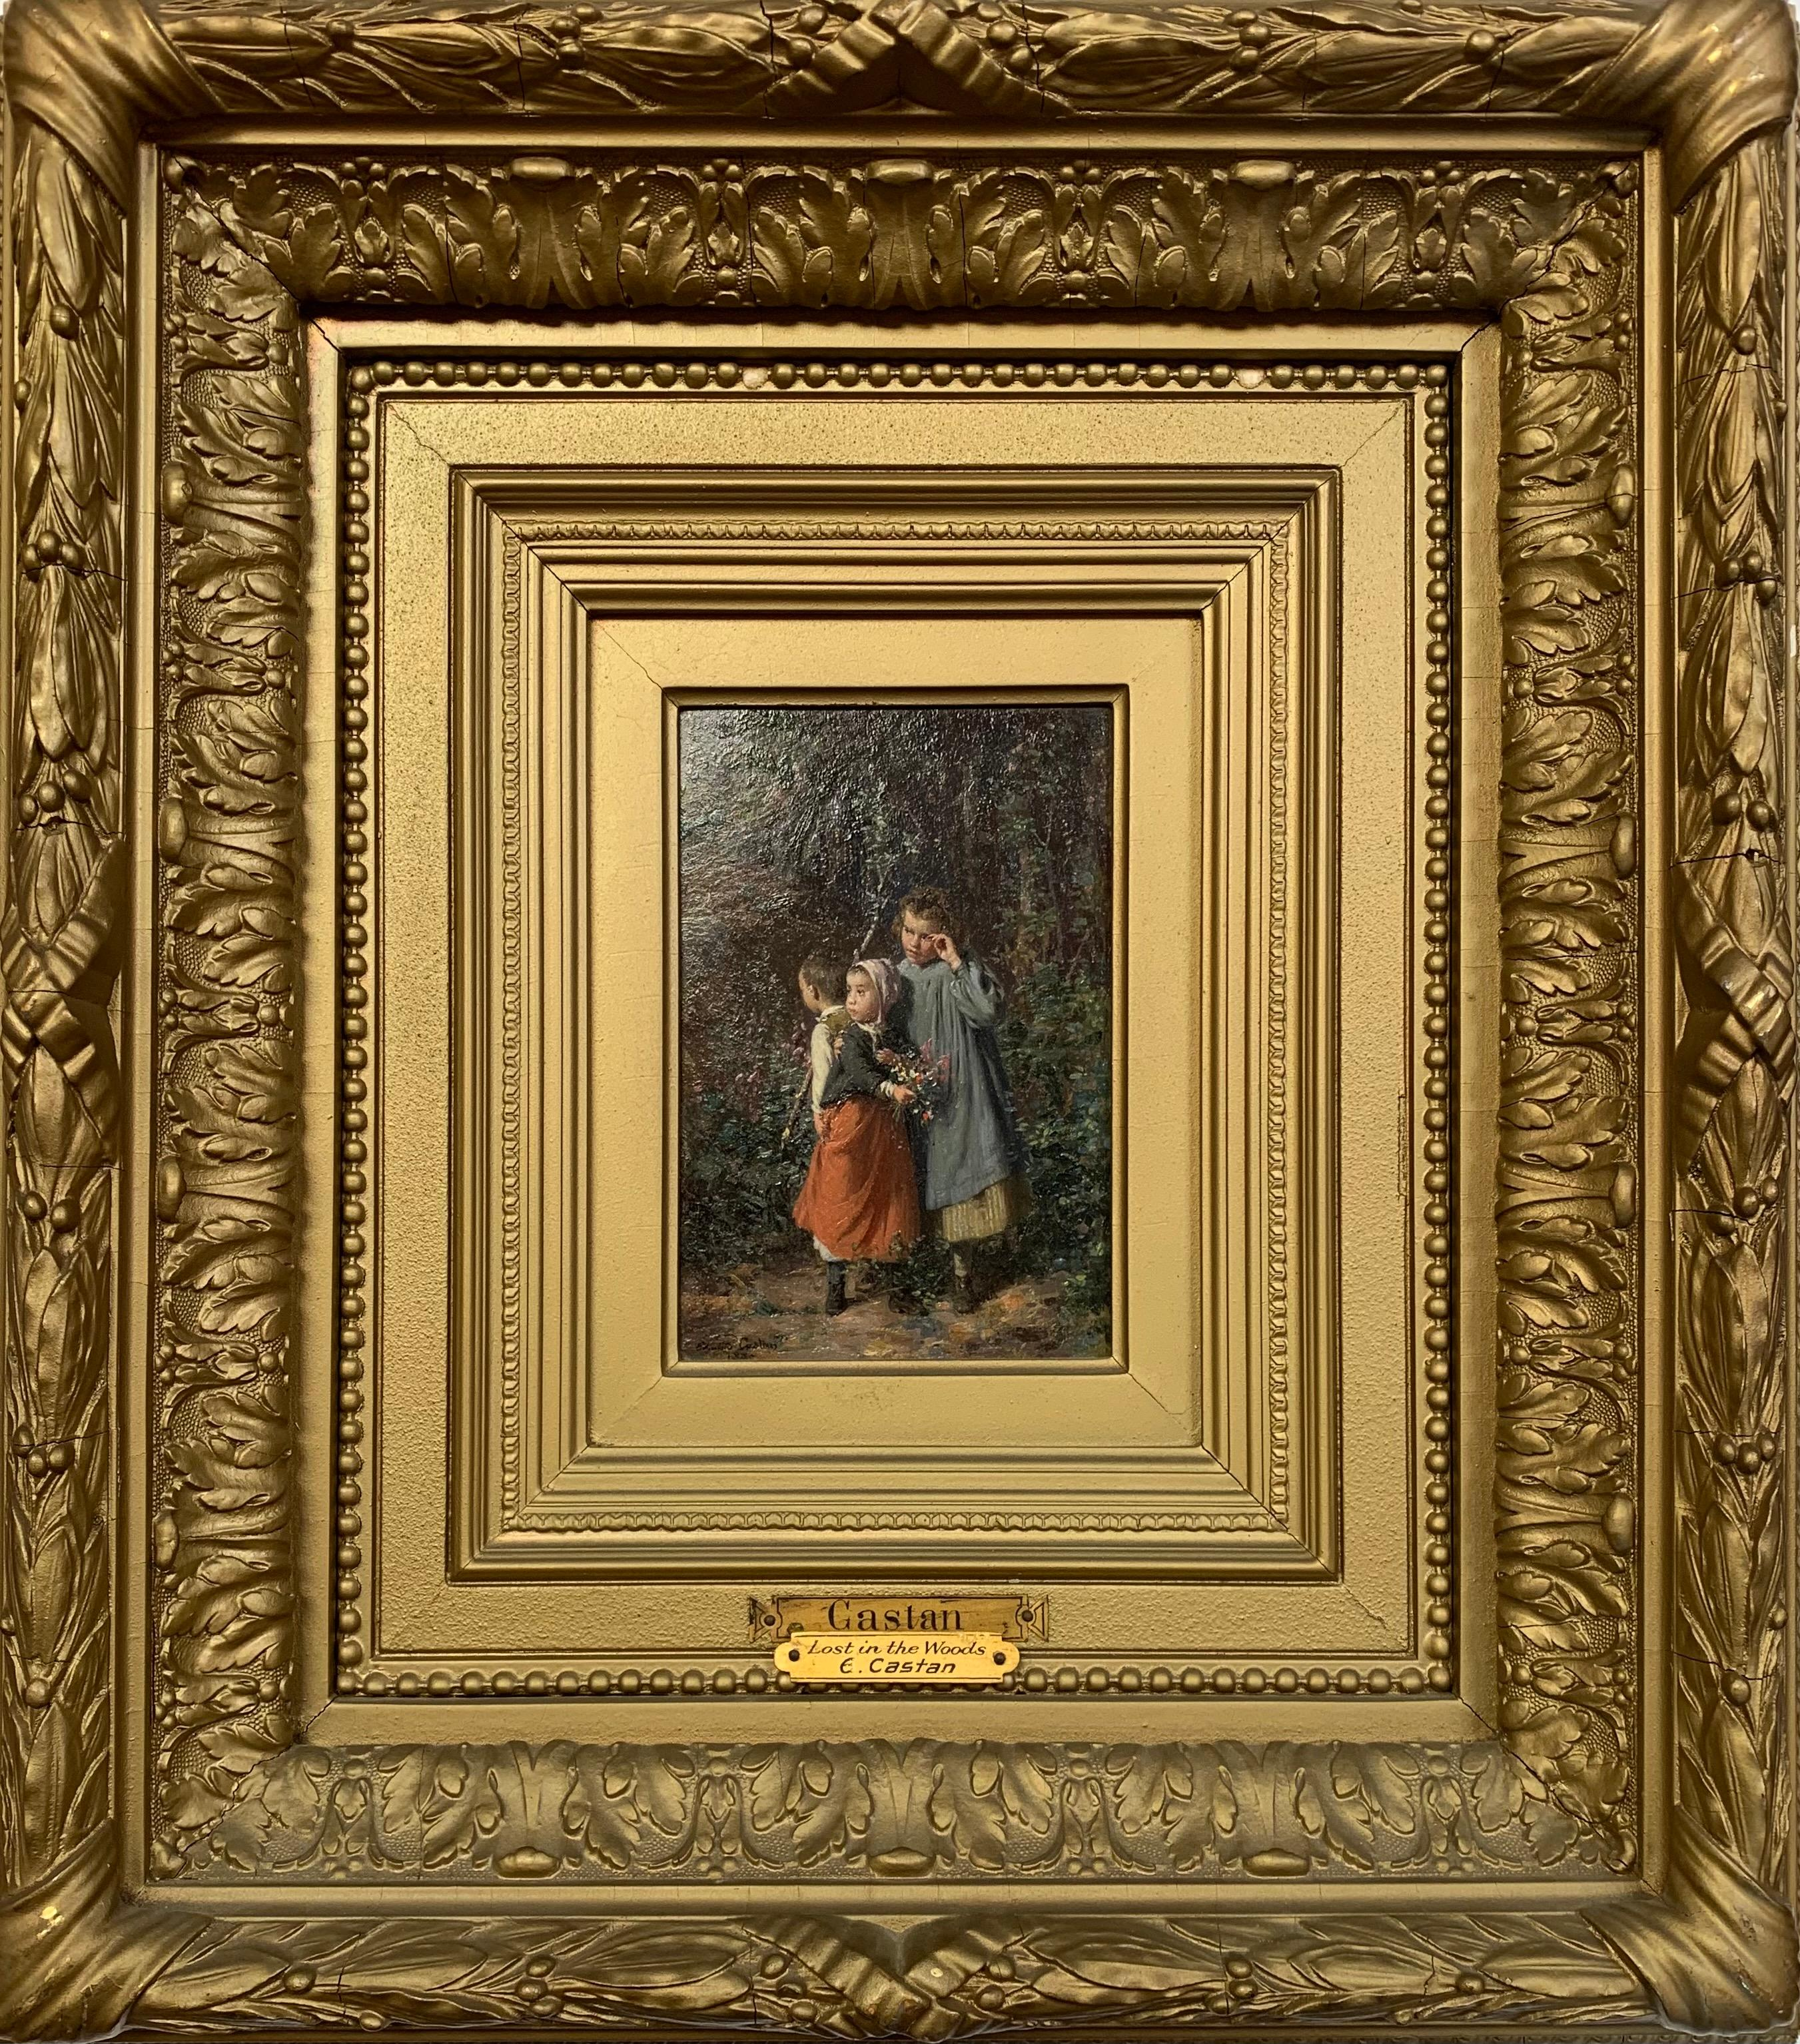 Lost in the Woods, 19th Century French Romanticism Painting